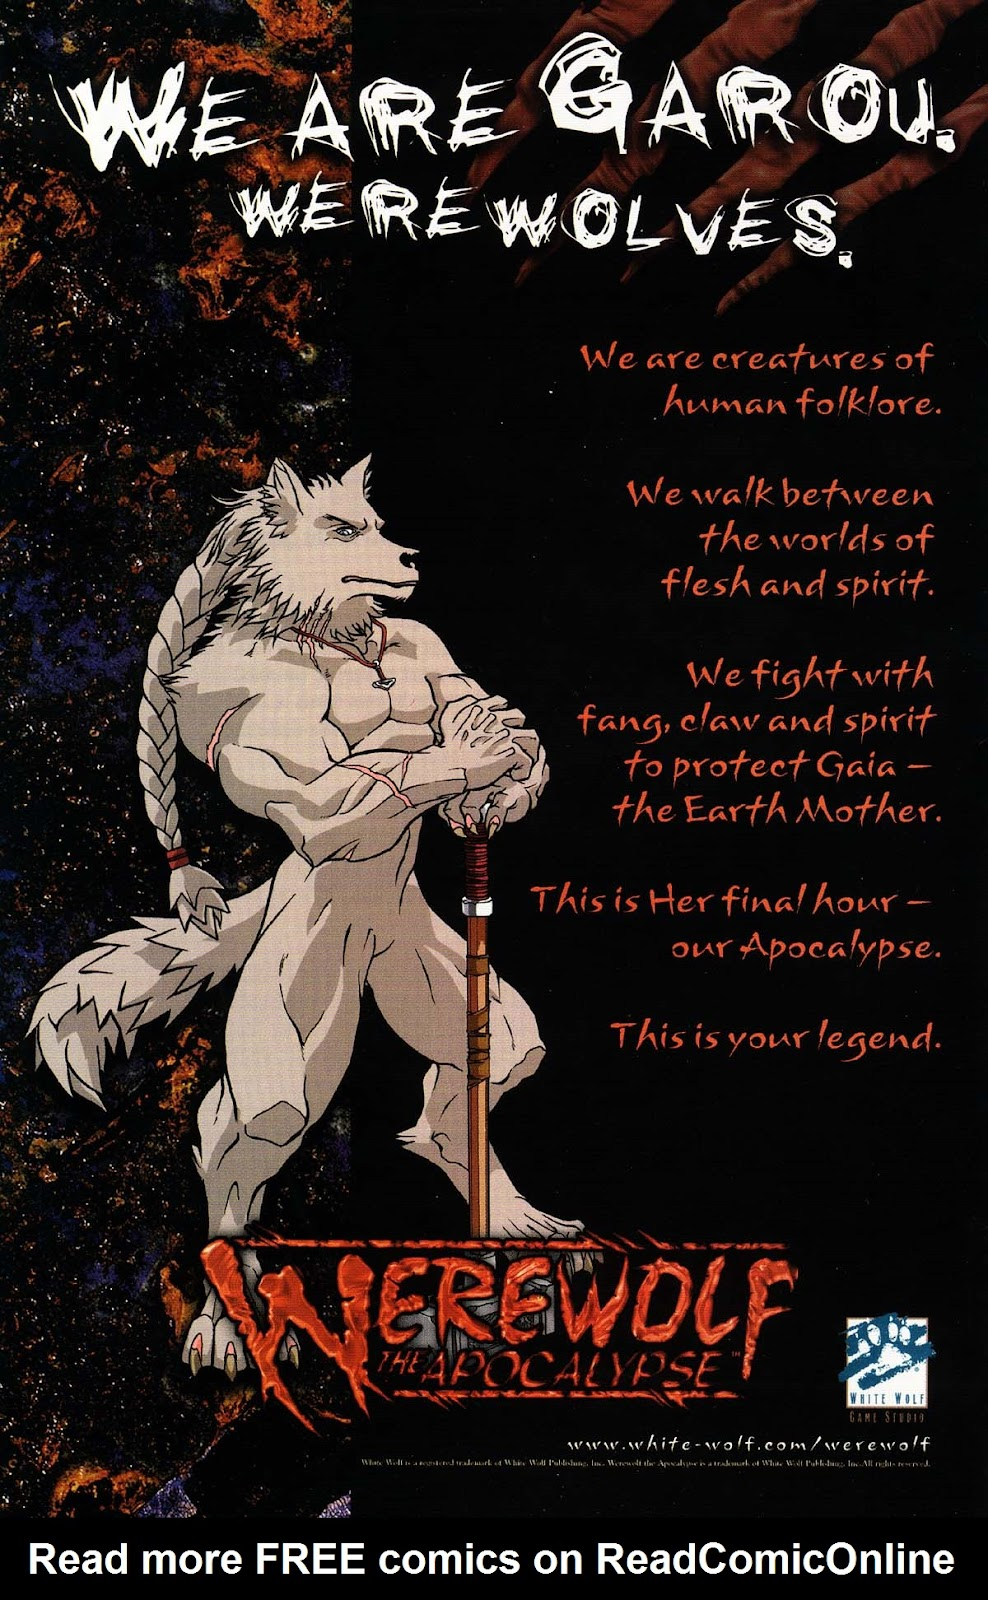 Read online Werewolf the Apocalypse comic -  Issue # Bone Gnawers - 4